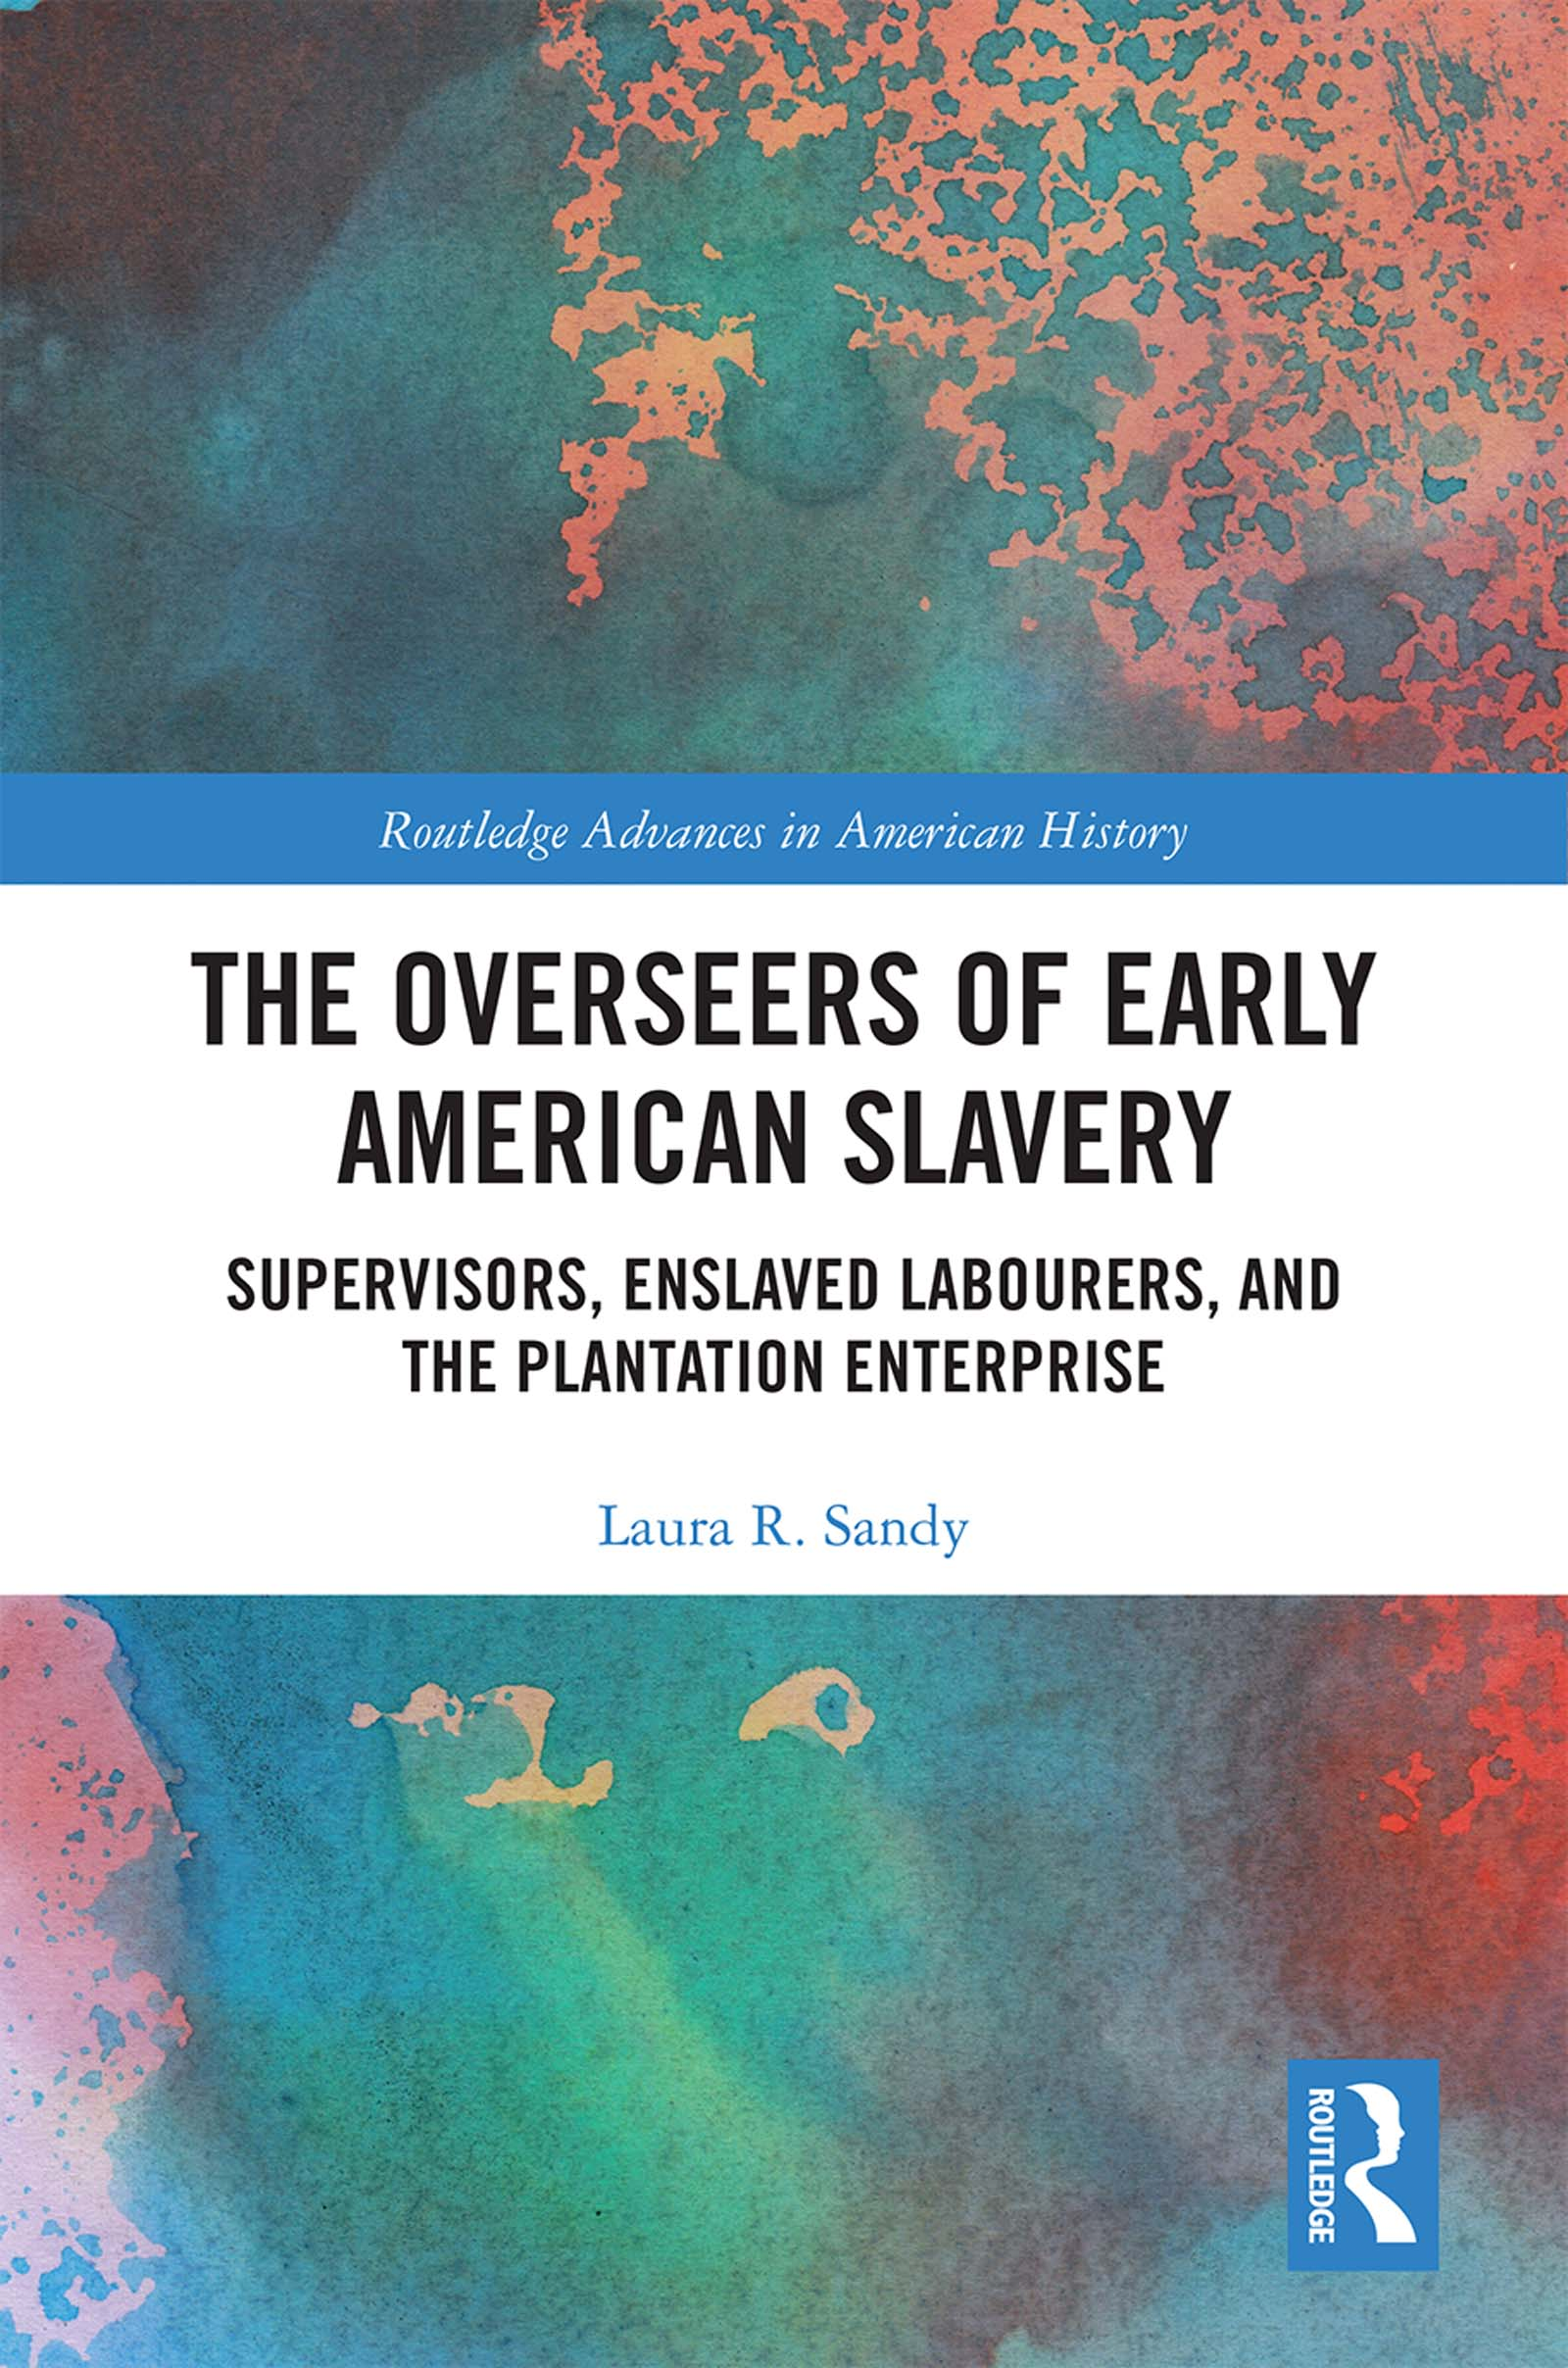 The Overseers of Early American Slavery: Supervisors, Enslaved Labourers, and the Plantation Enterprise book cover